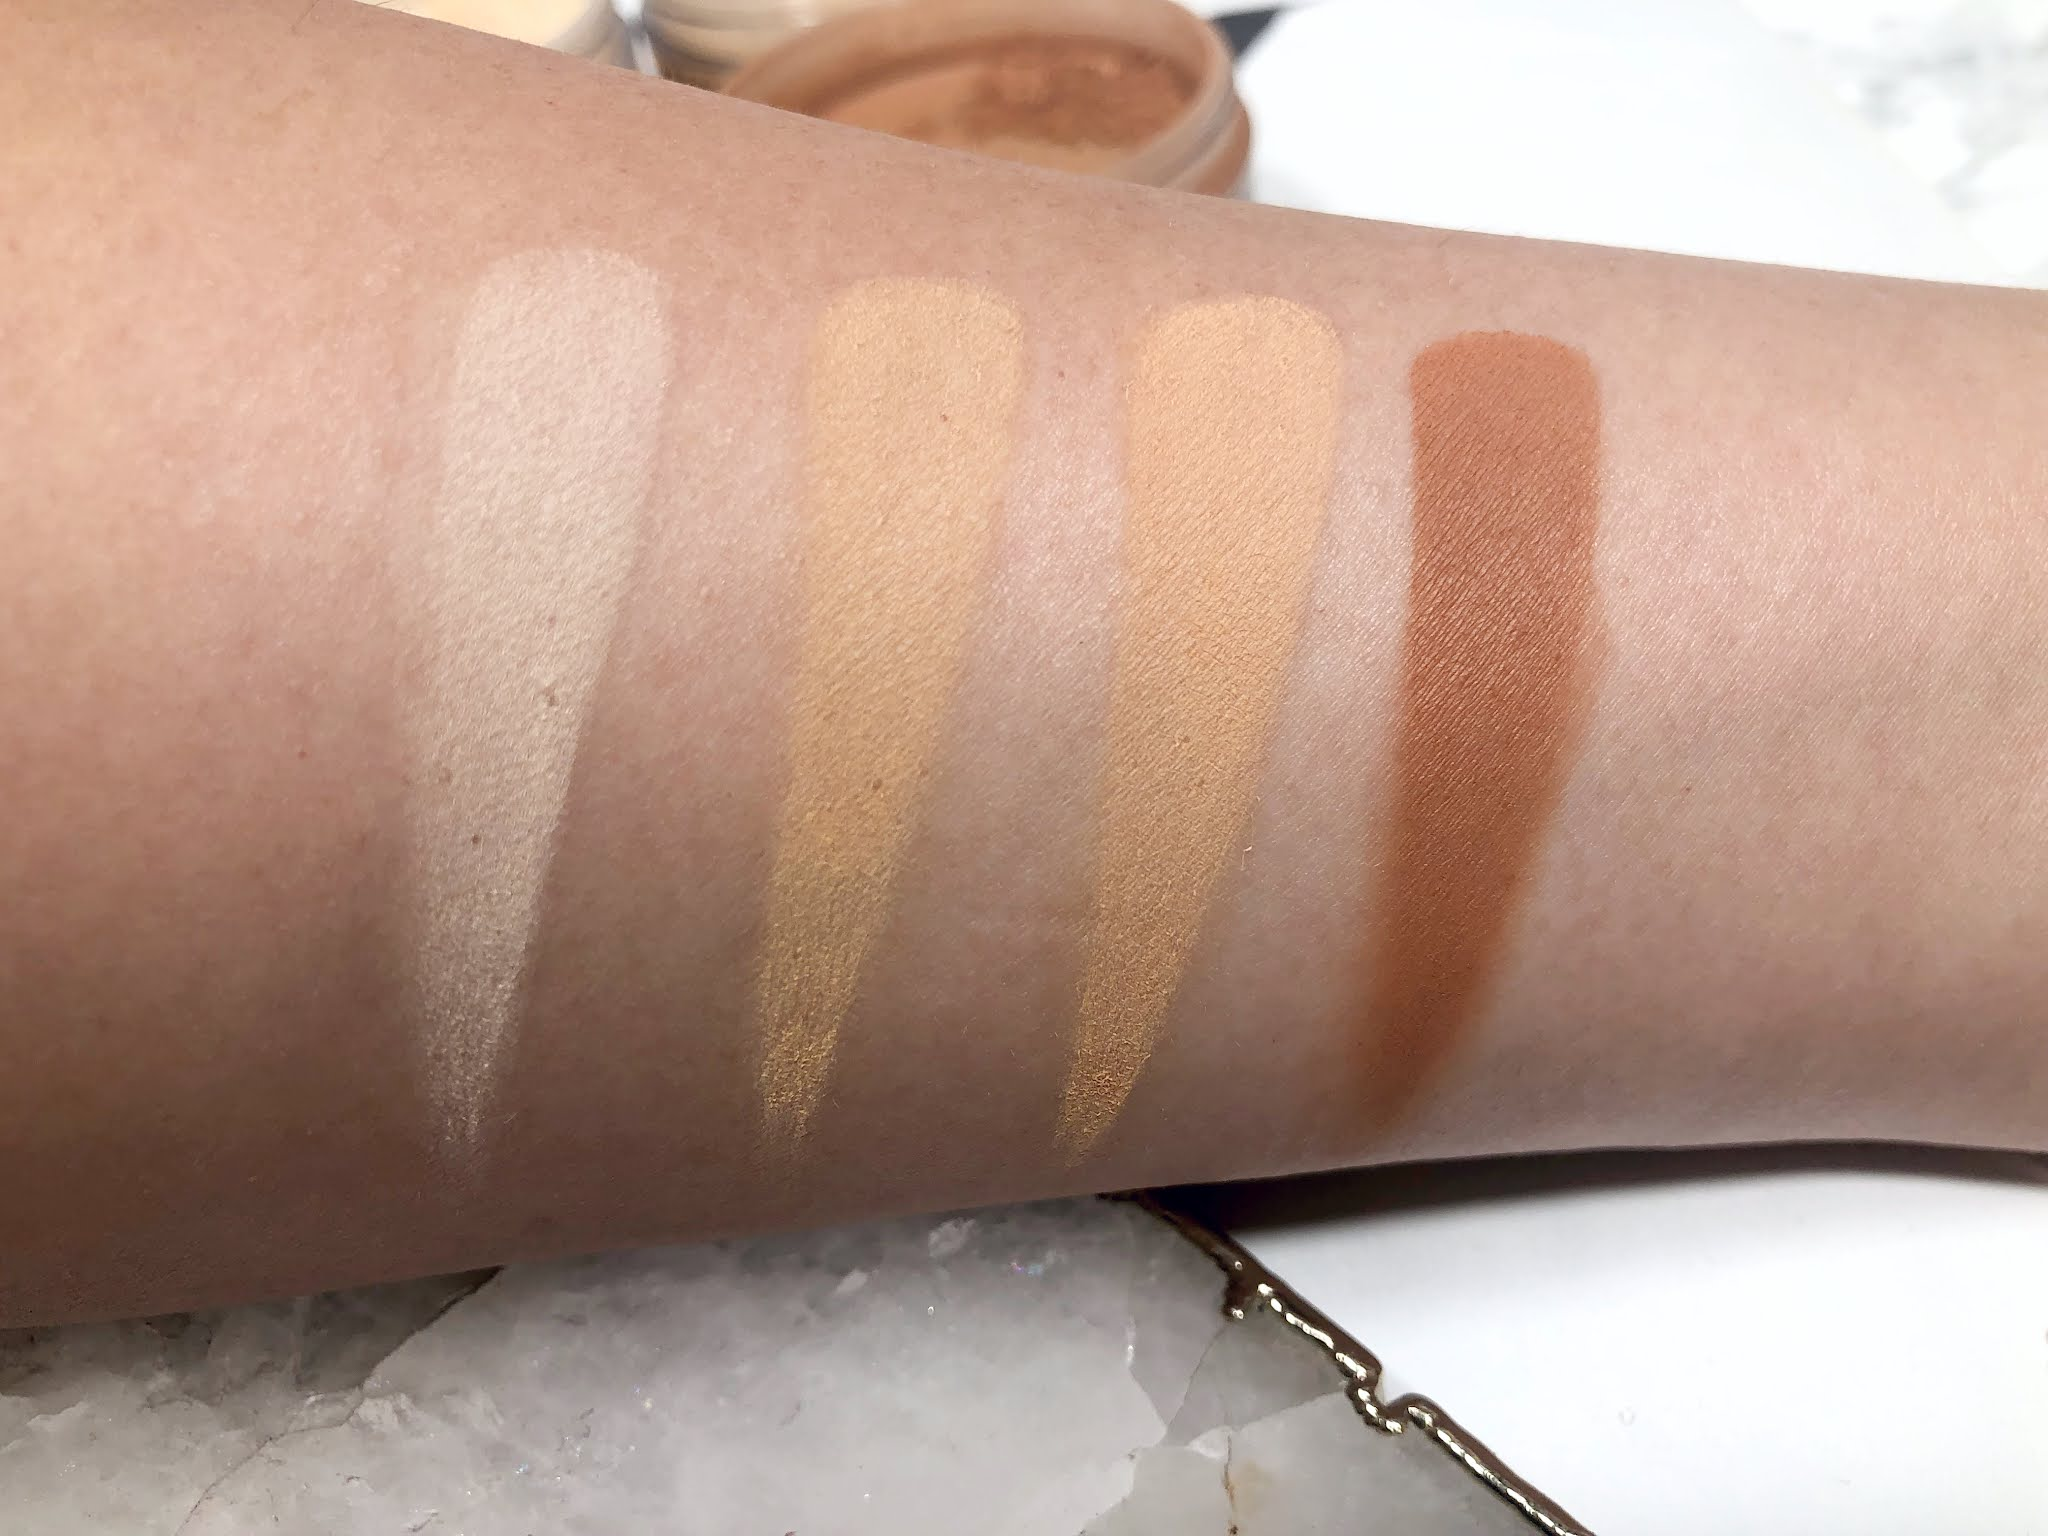 By Terry Hyaluronic Hydra-Palette Review and Swatches